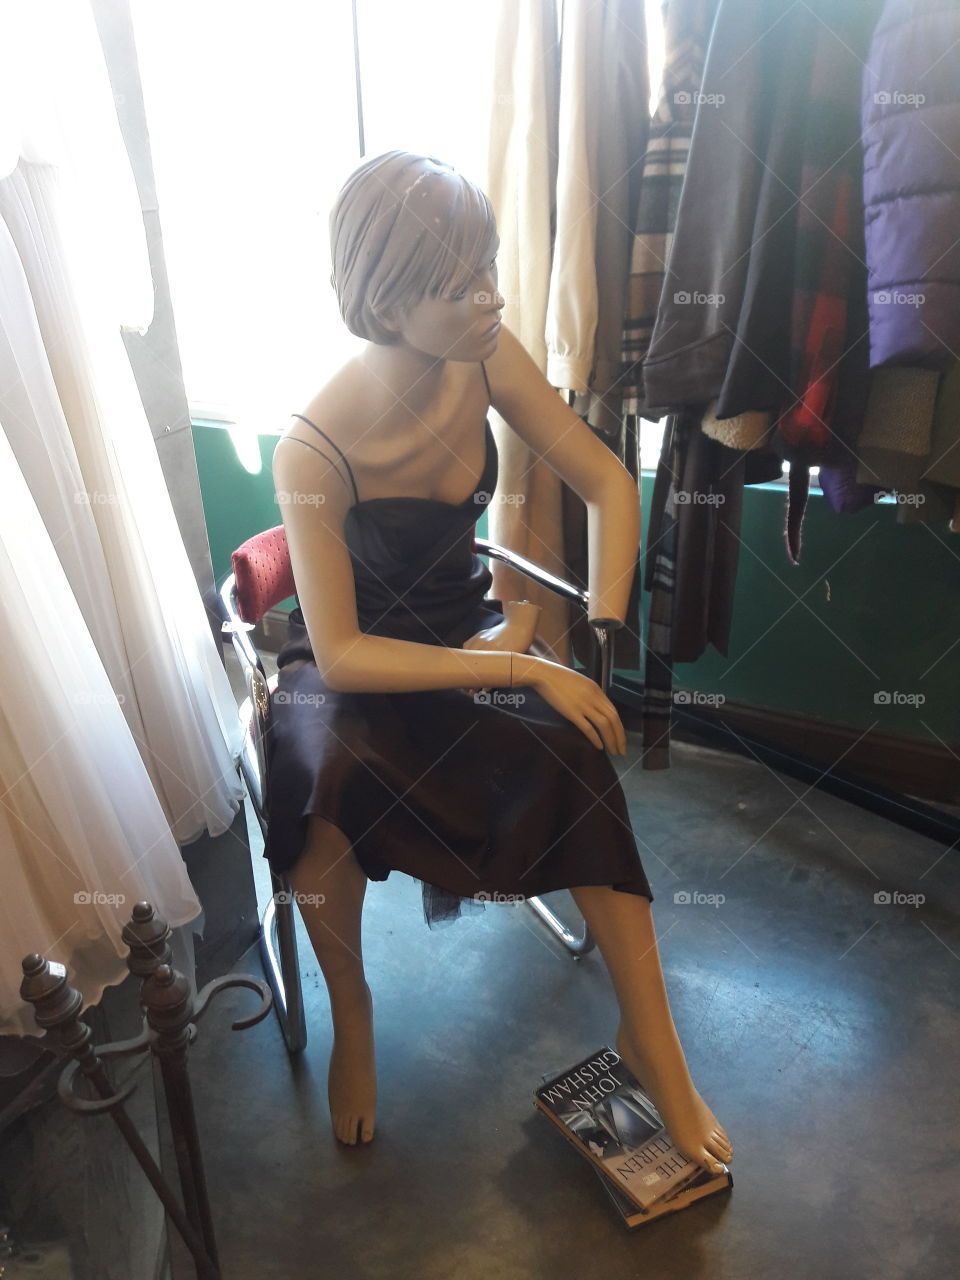 mannequin  at the thrift shop.